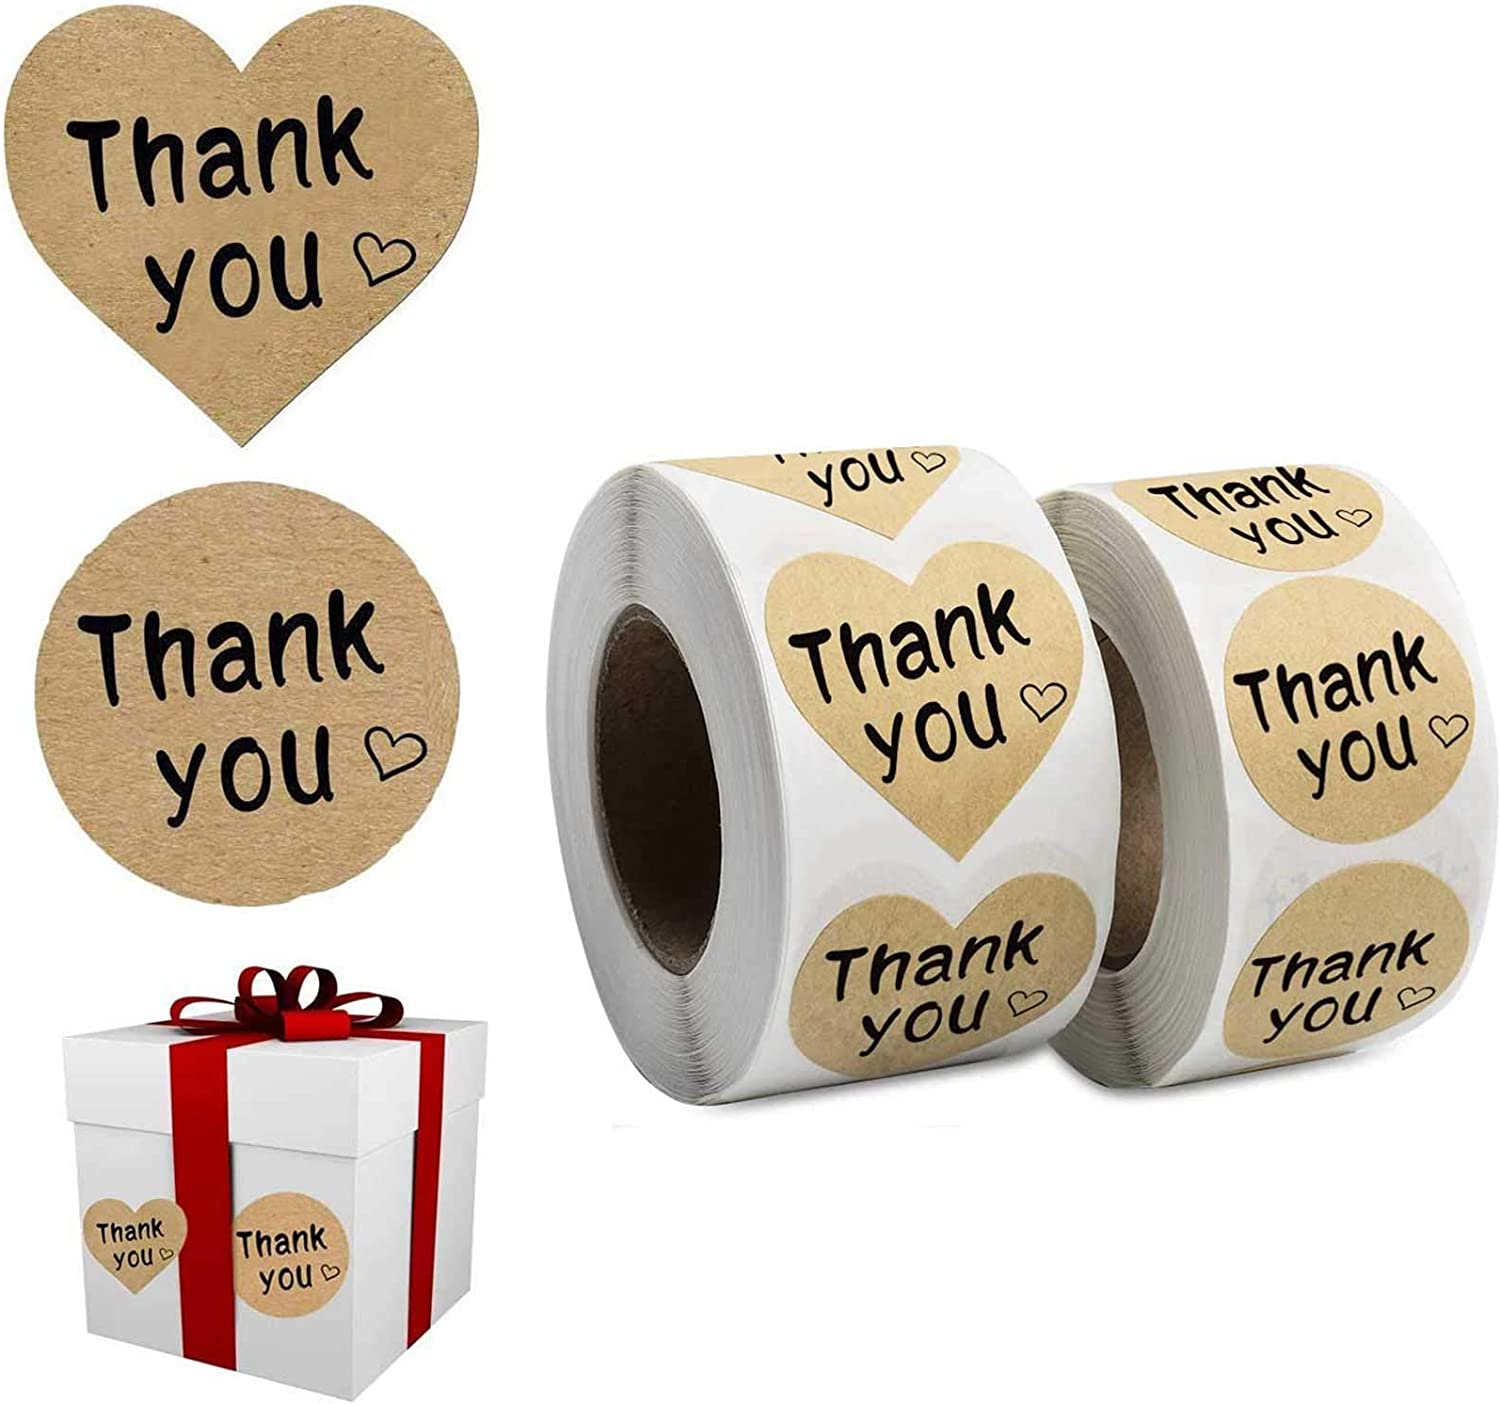 1000 Pack, Thank You Stickers Kraft Paper -2 Designs- Heart Love Shape Round Adhesive Decorative Sealing Stickers